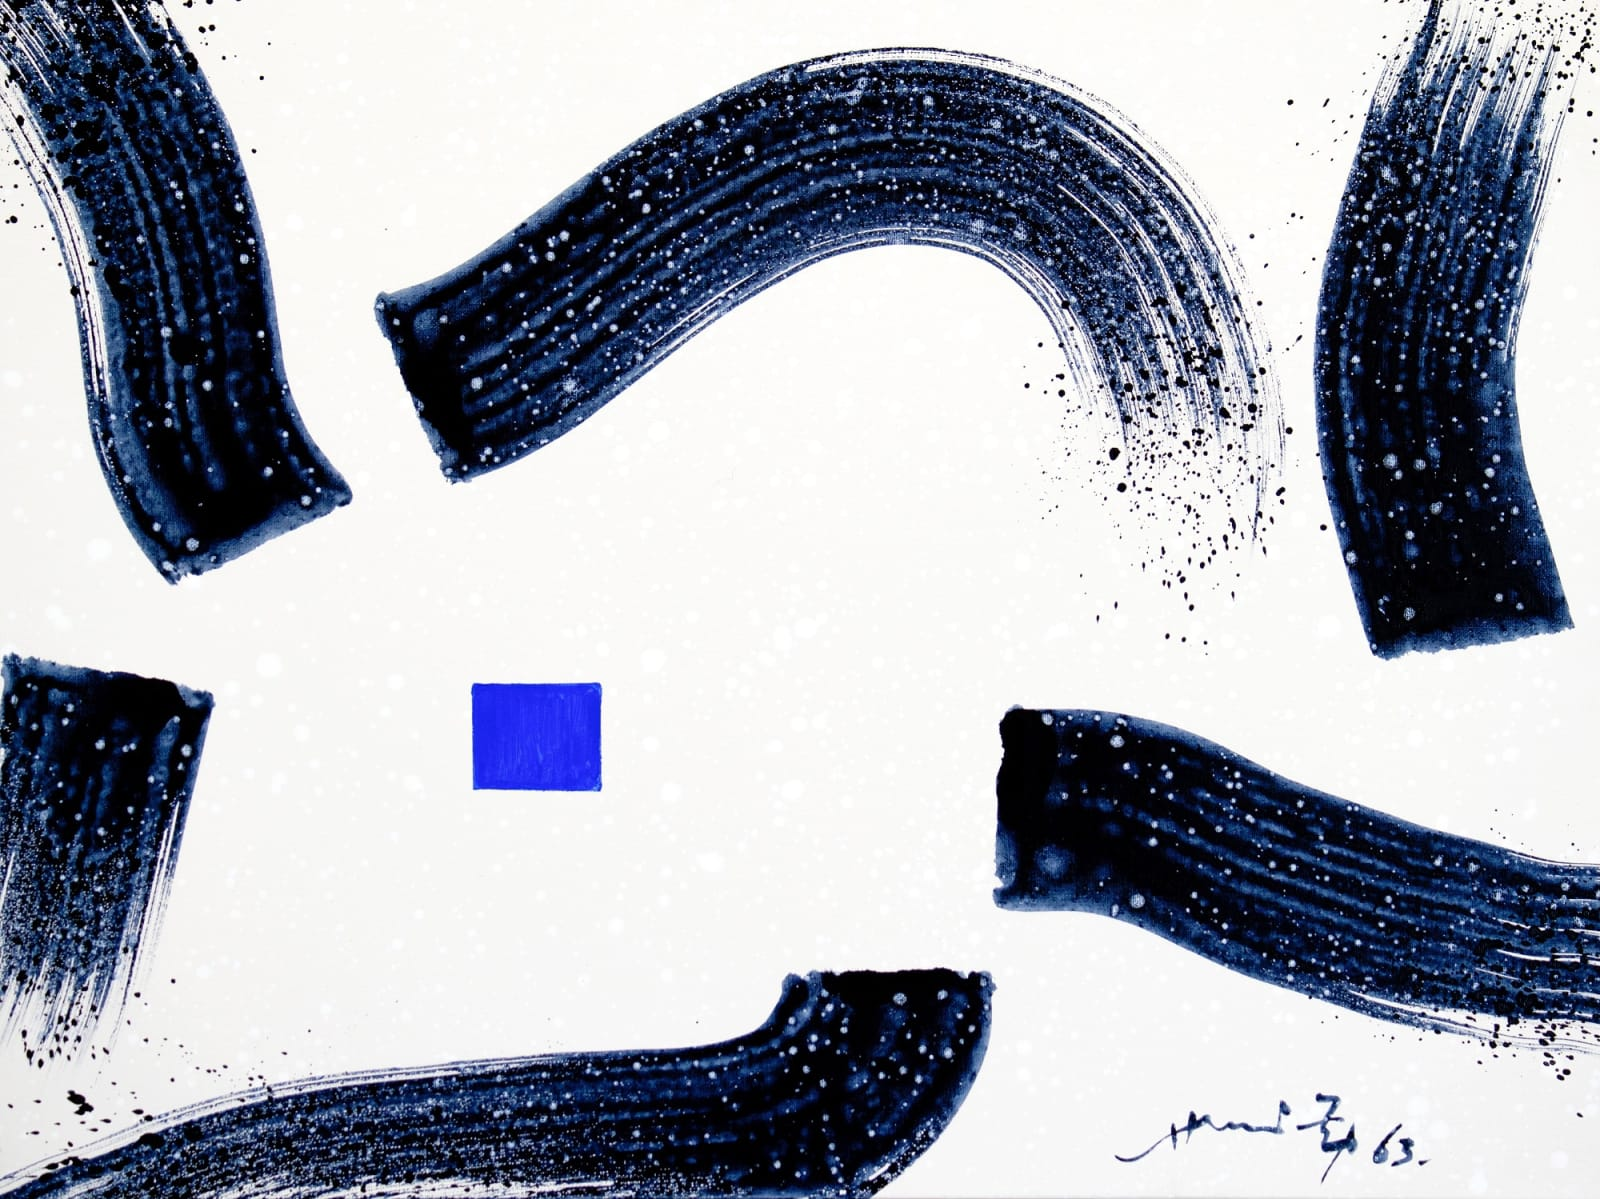 Hsiao Chin Movement-2, 1963 Acrylic on canvas 60 x 80 cm